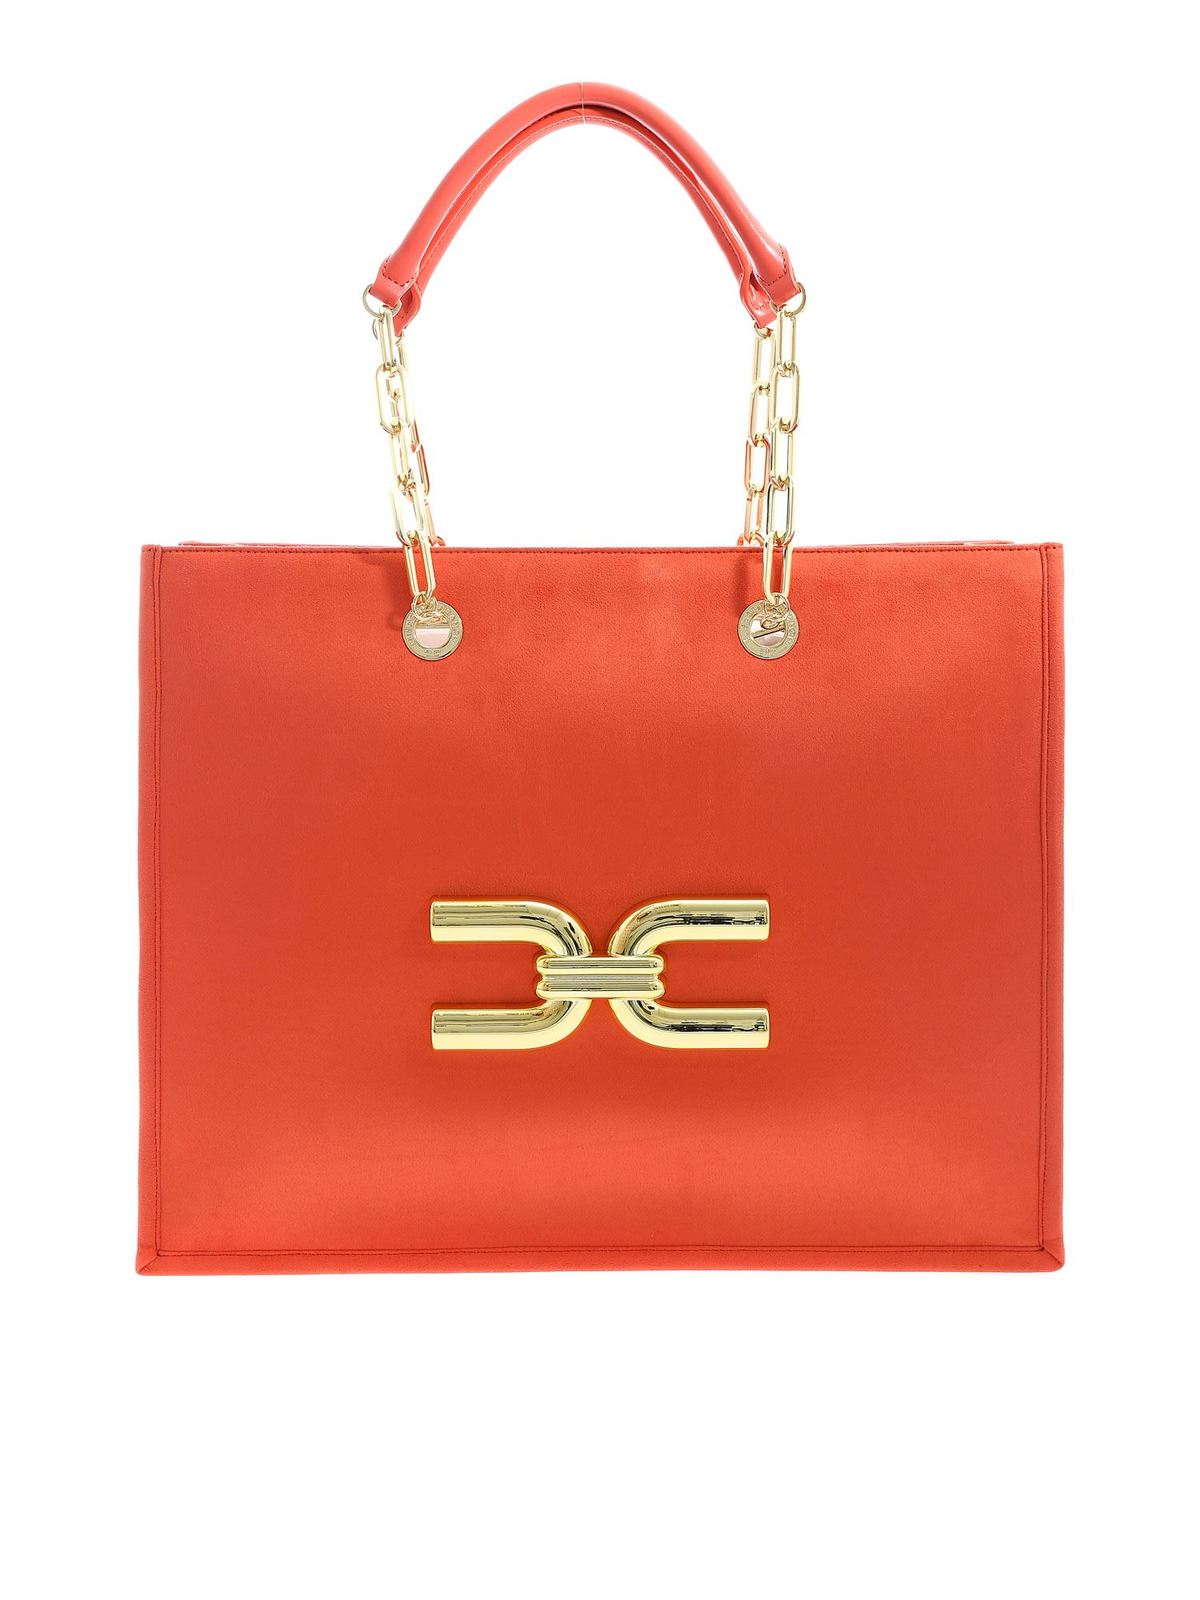 Elisabetta Franchi GOLDEN LOGO SHOULDER BAG IN CORAL COLOR